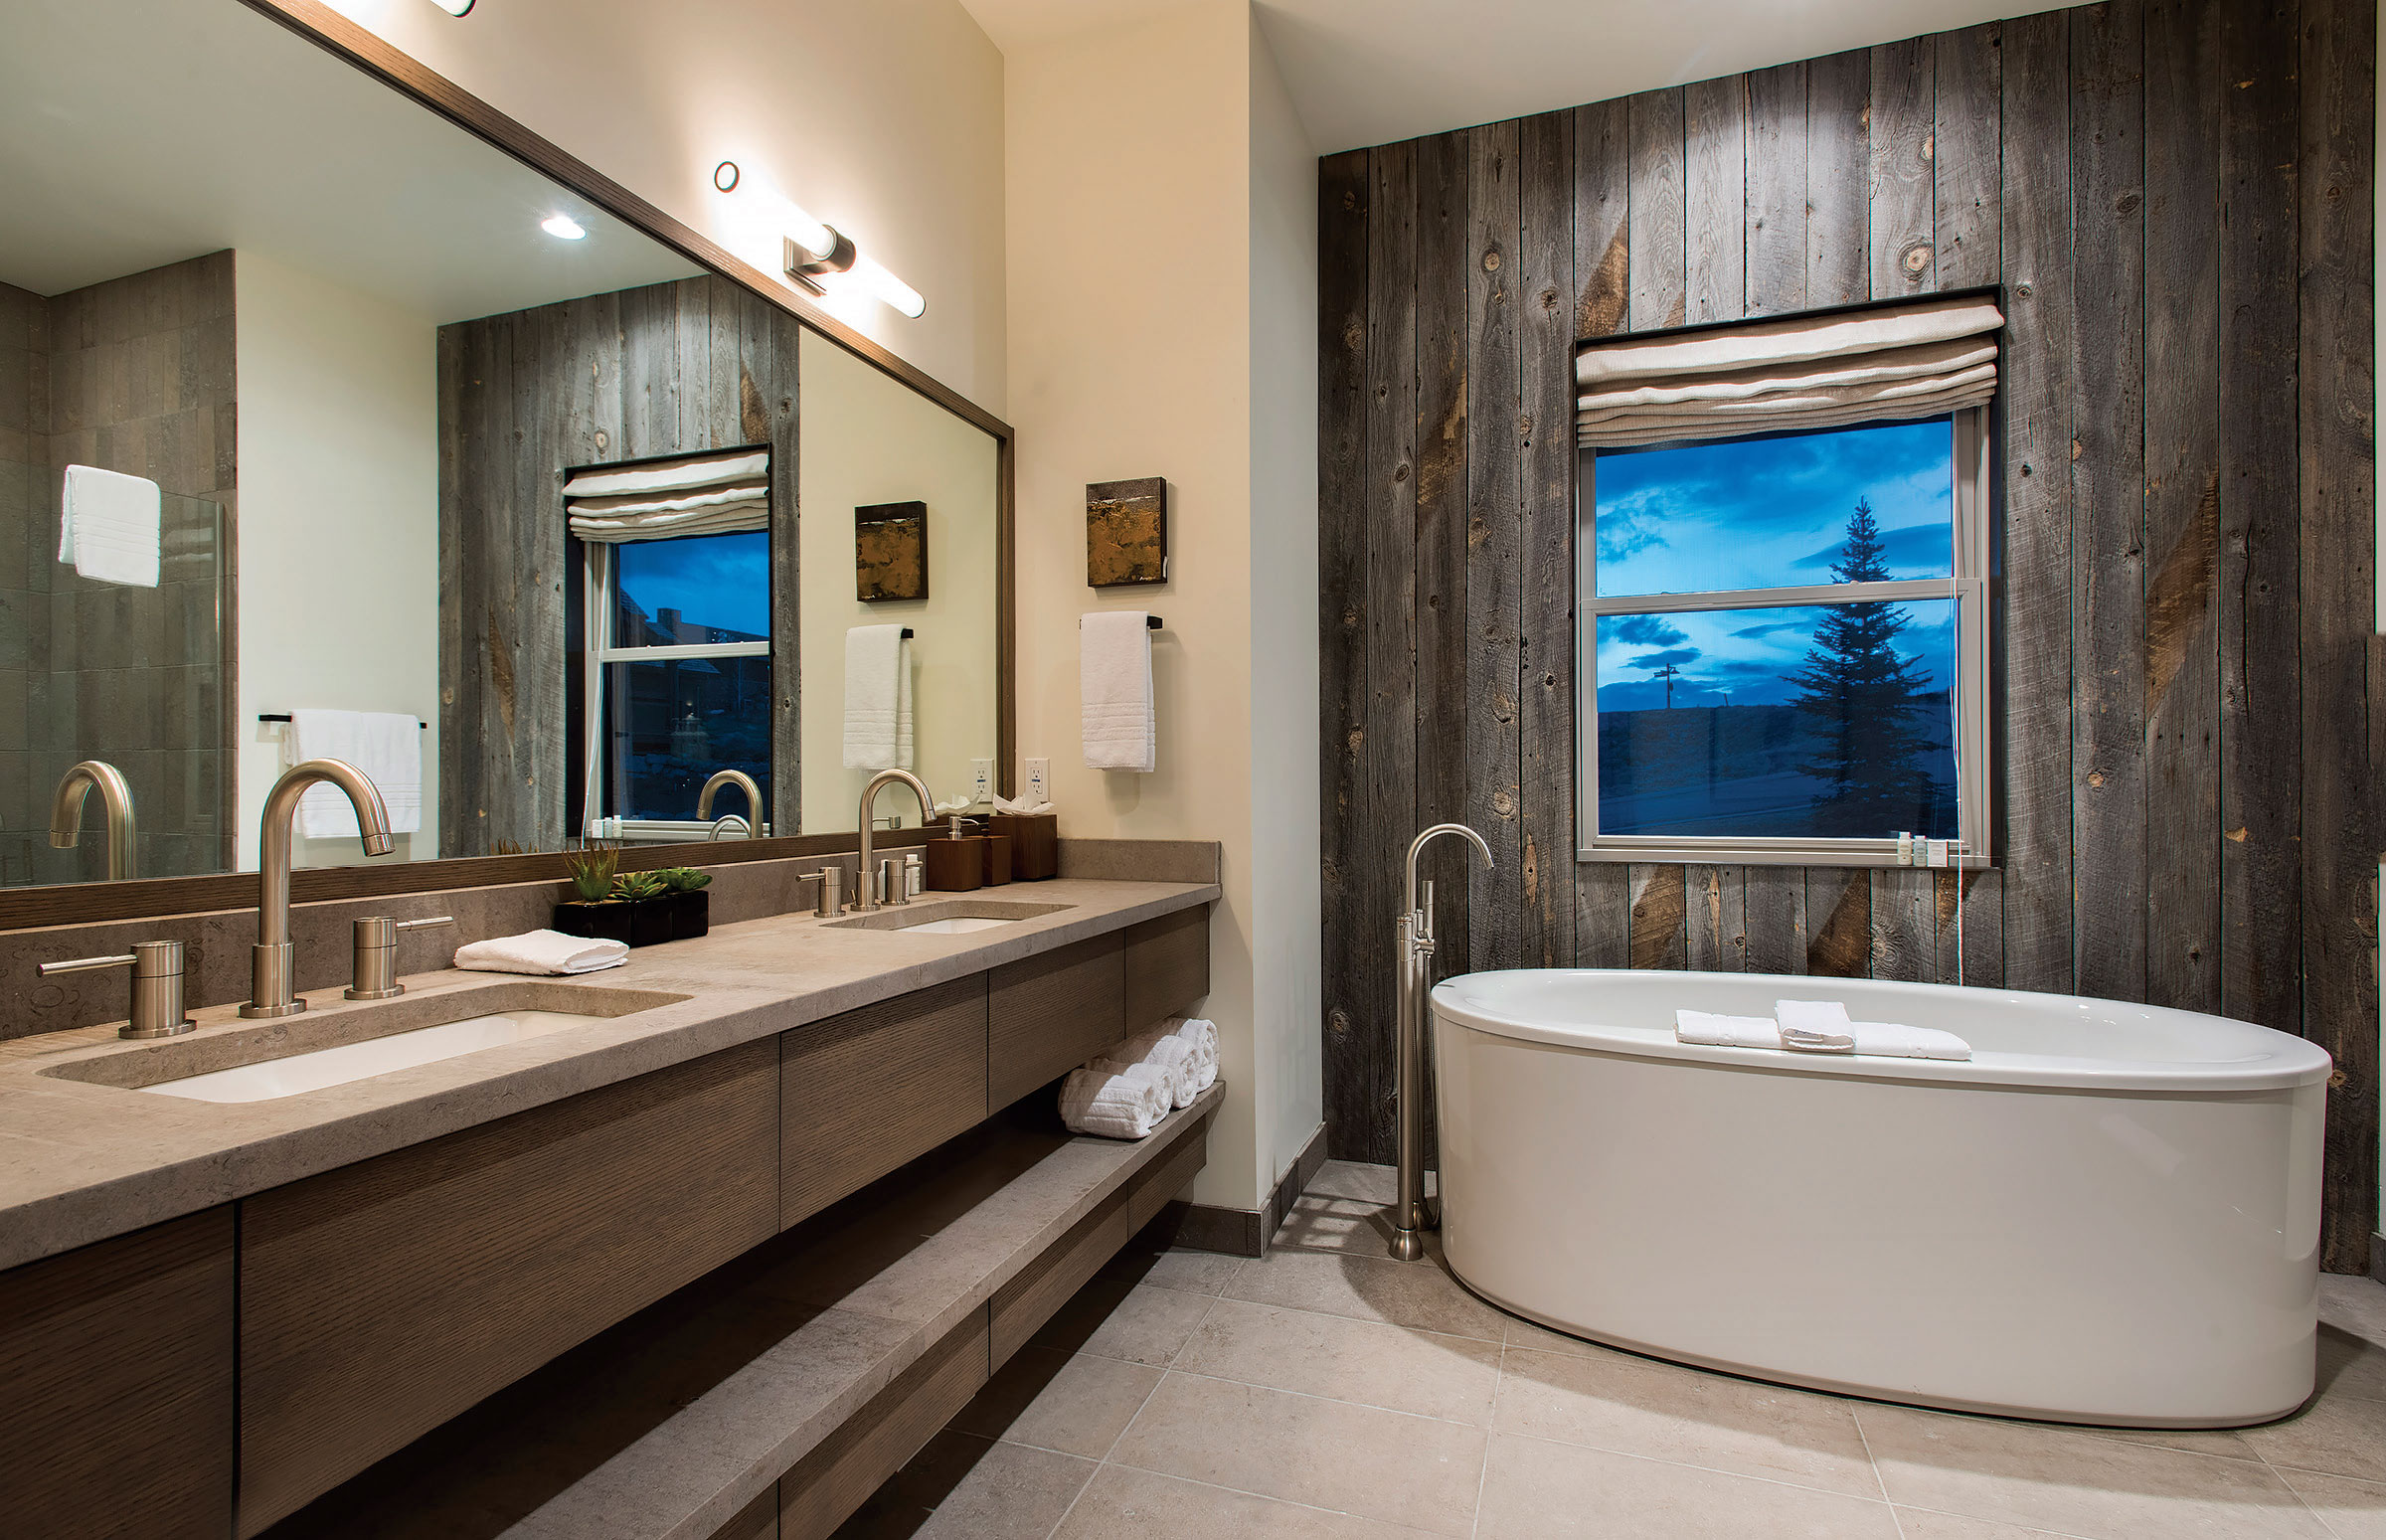 The loo western home journal luxury mountain home resource for Ranch bathroom design